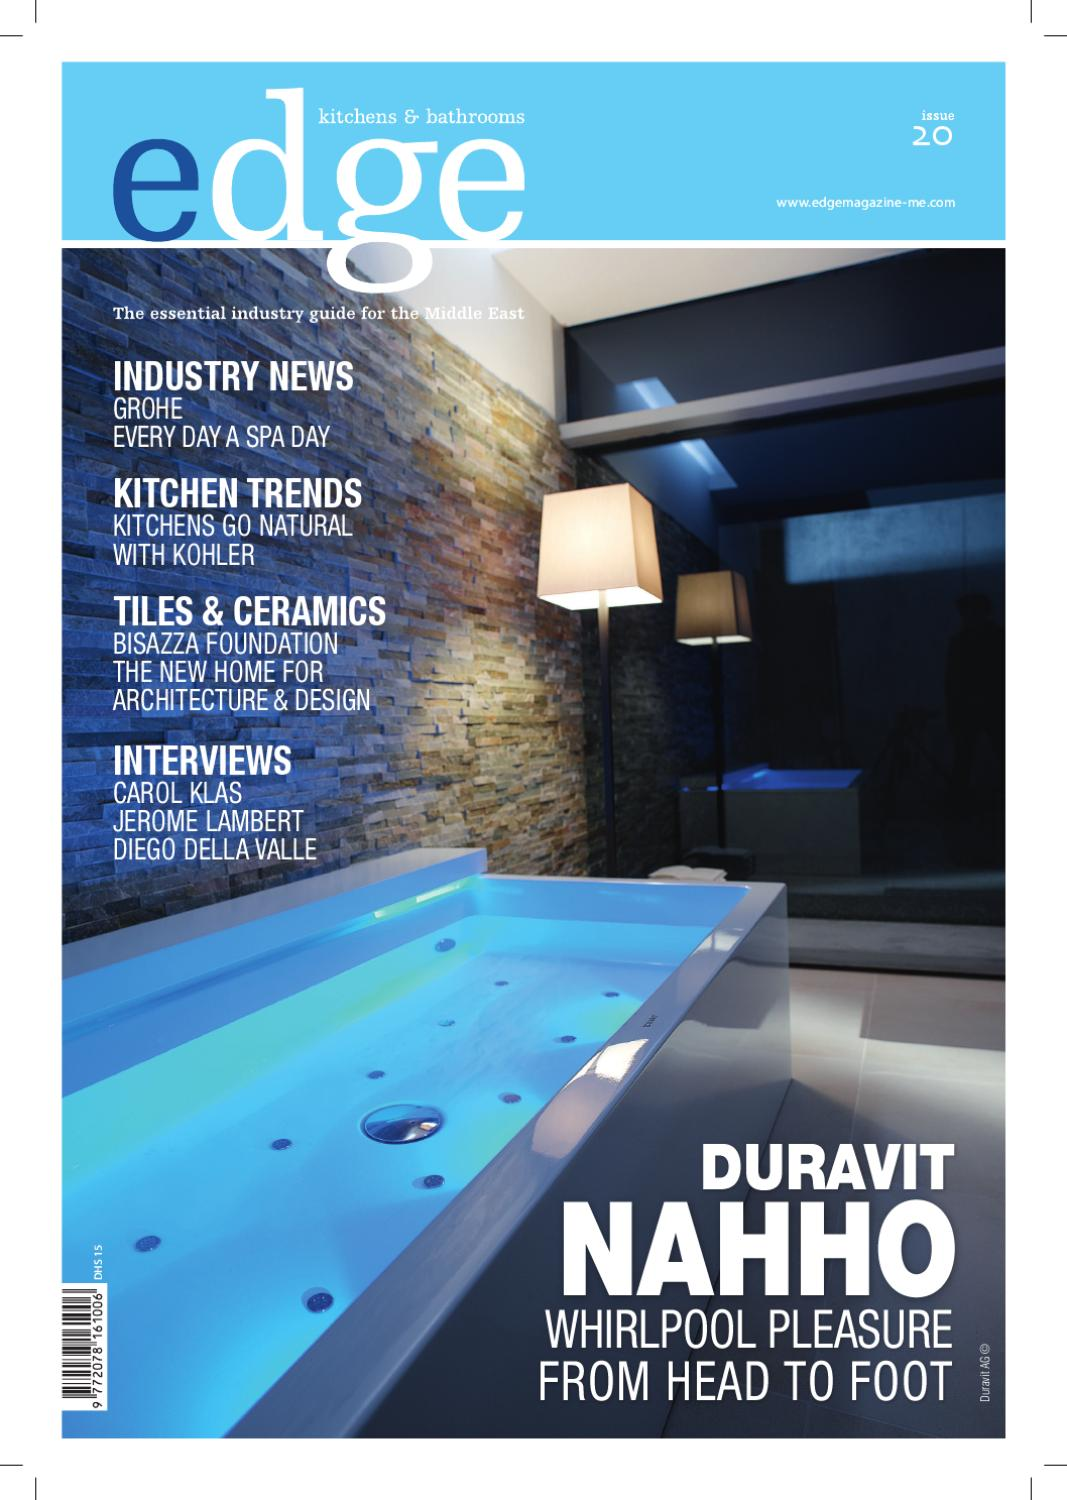 Edge Kitchen & Bathroom Magazine by Amed - issuu